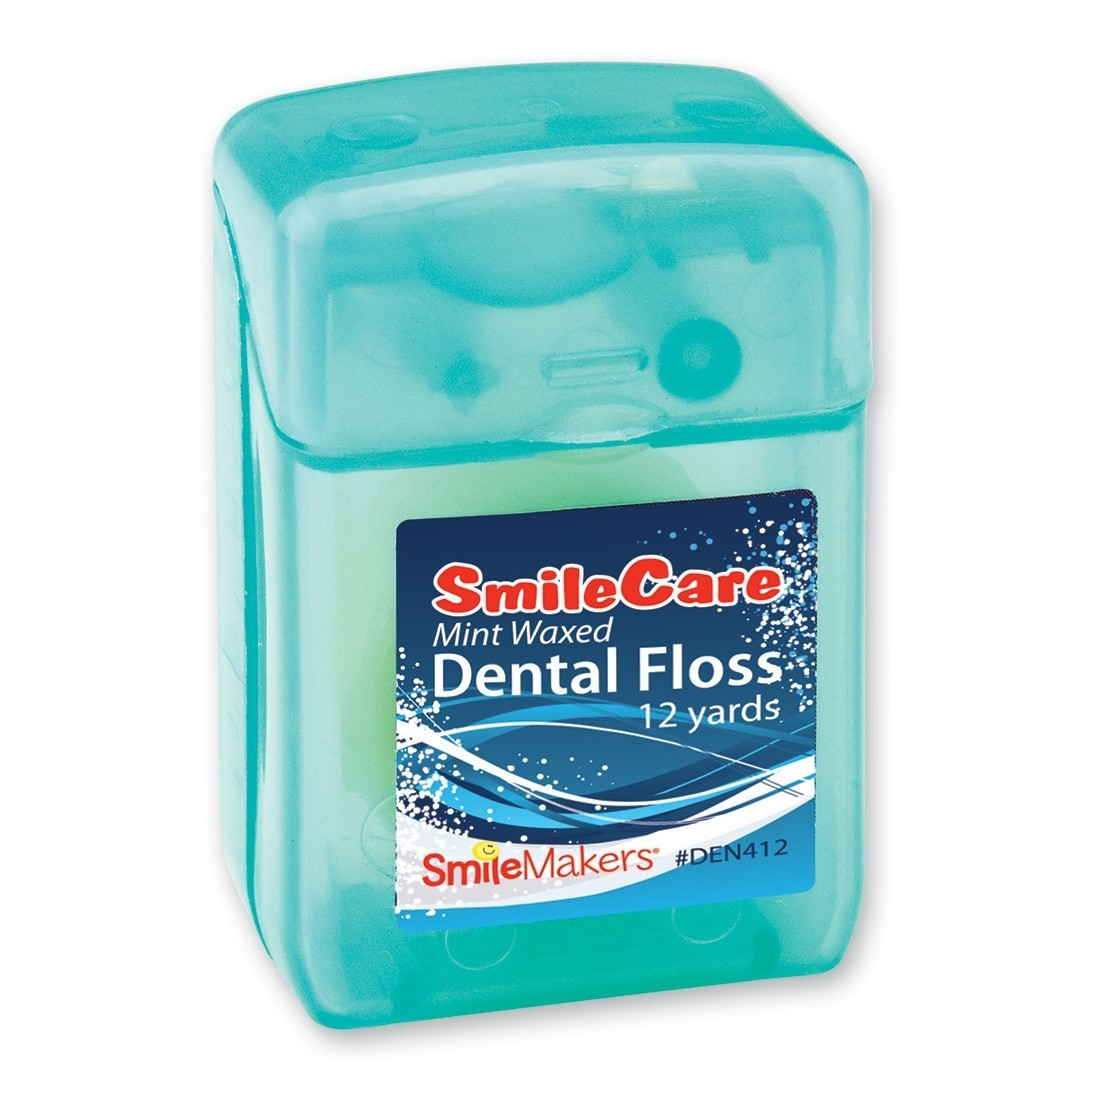 12 Yards SmileCare Waxed Mint Floss [image]